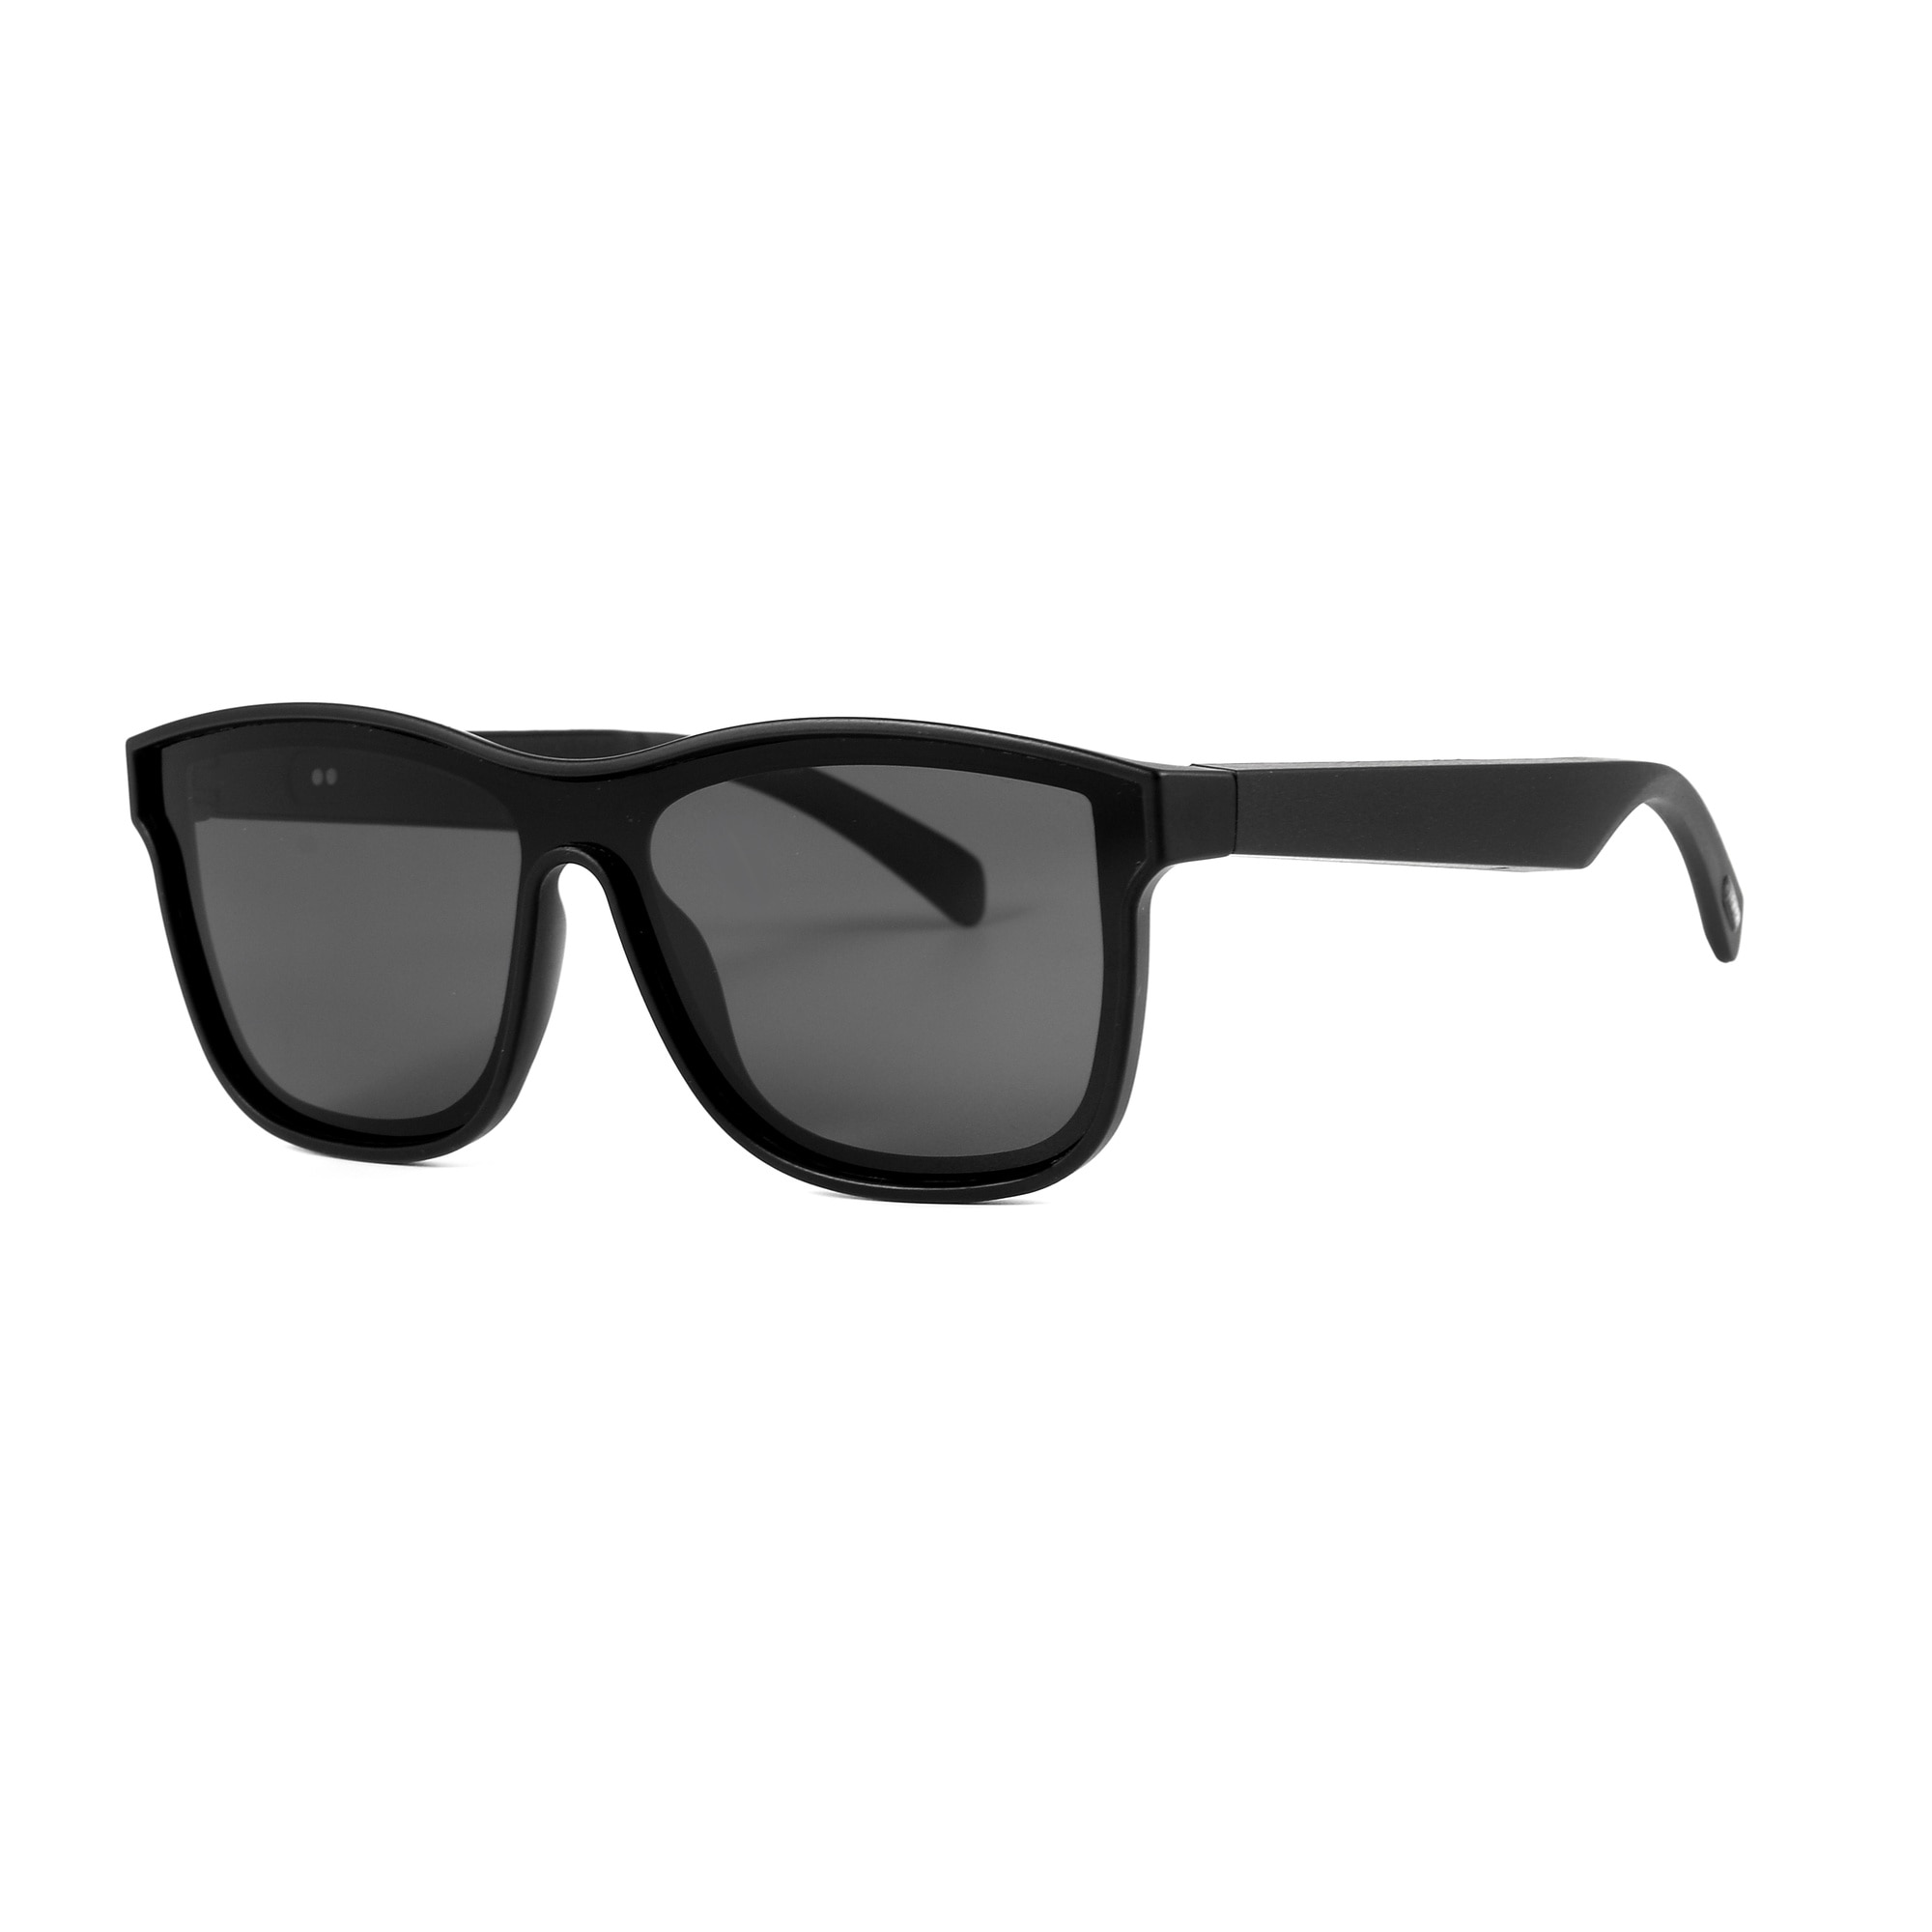 Bluetooth men's sunglasses, smart sunglasses, open headset, audio, hands-free, call, music, iPhone, for Huawei and Xiaomi, black